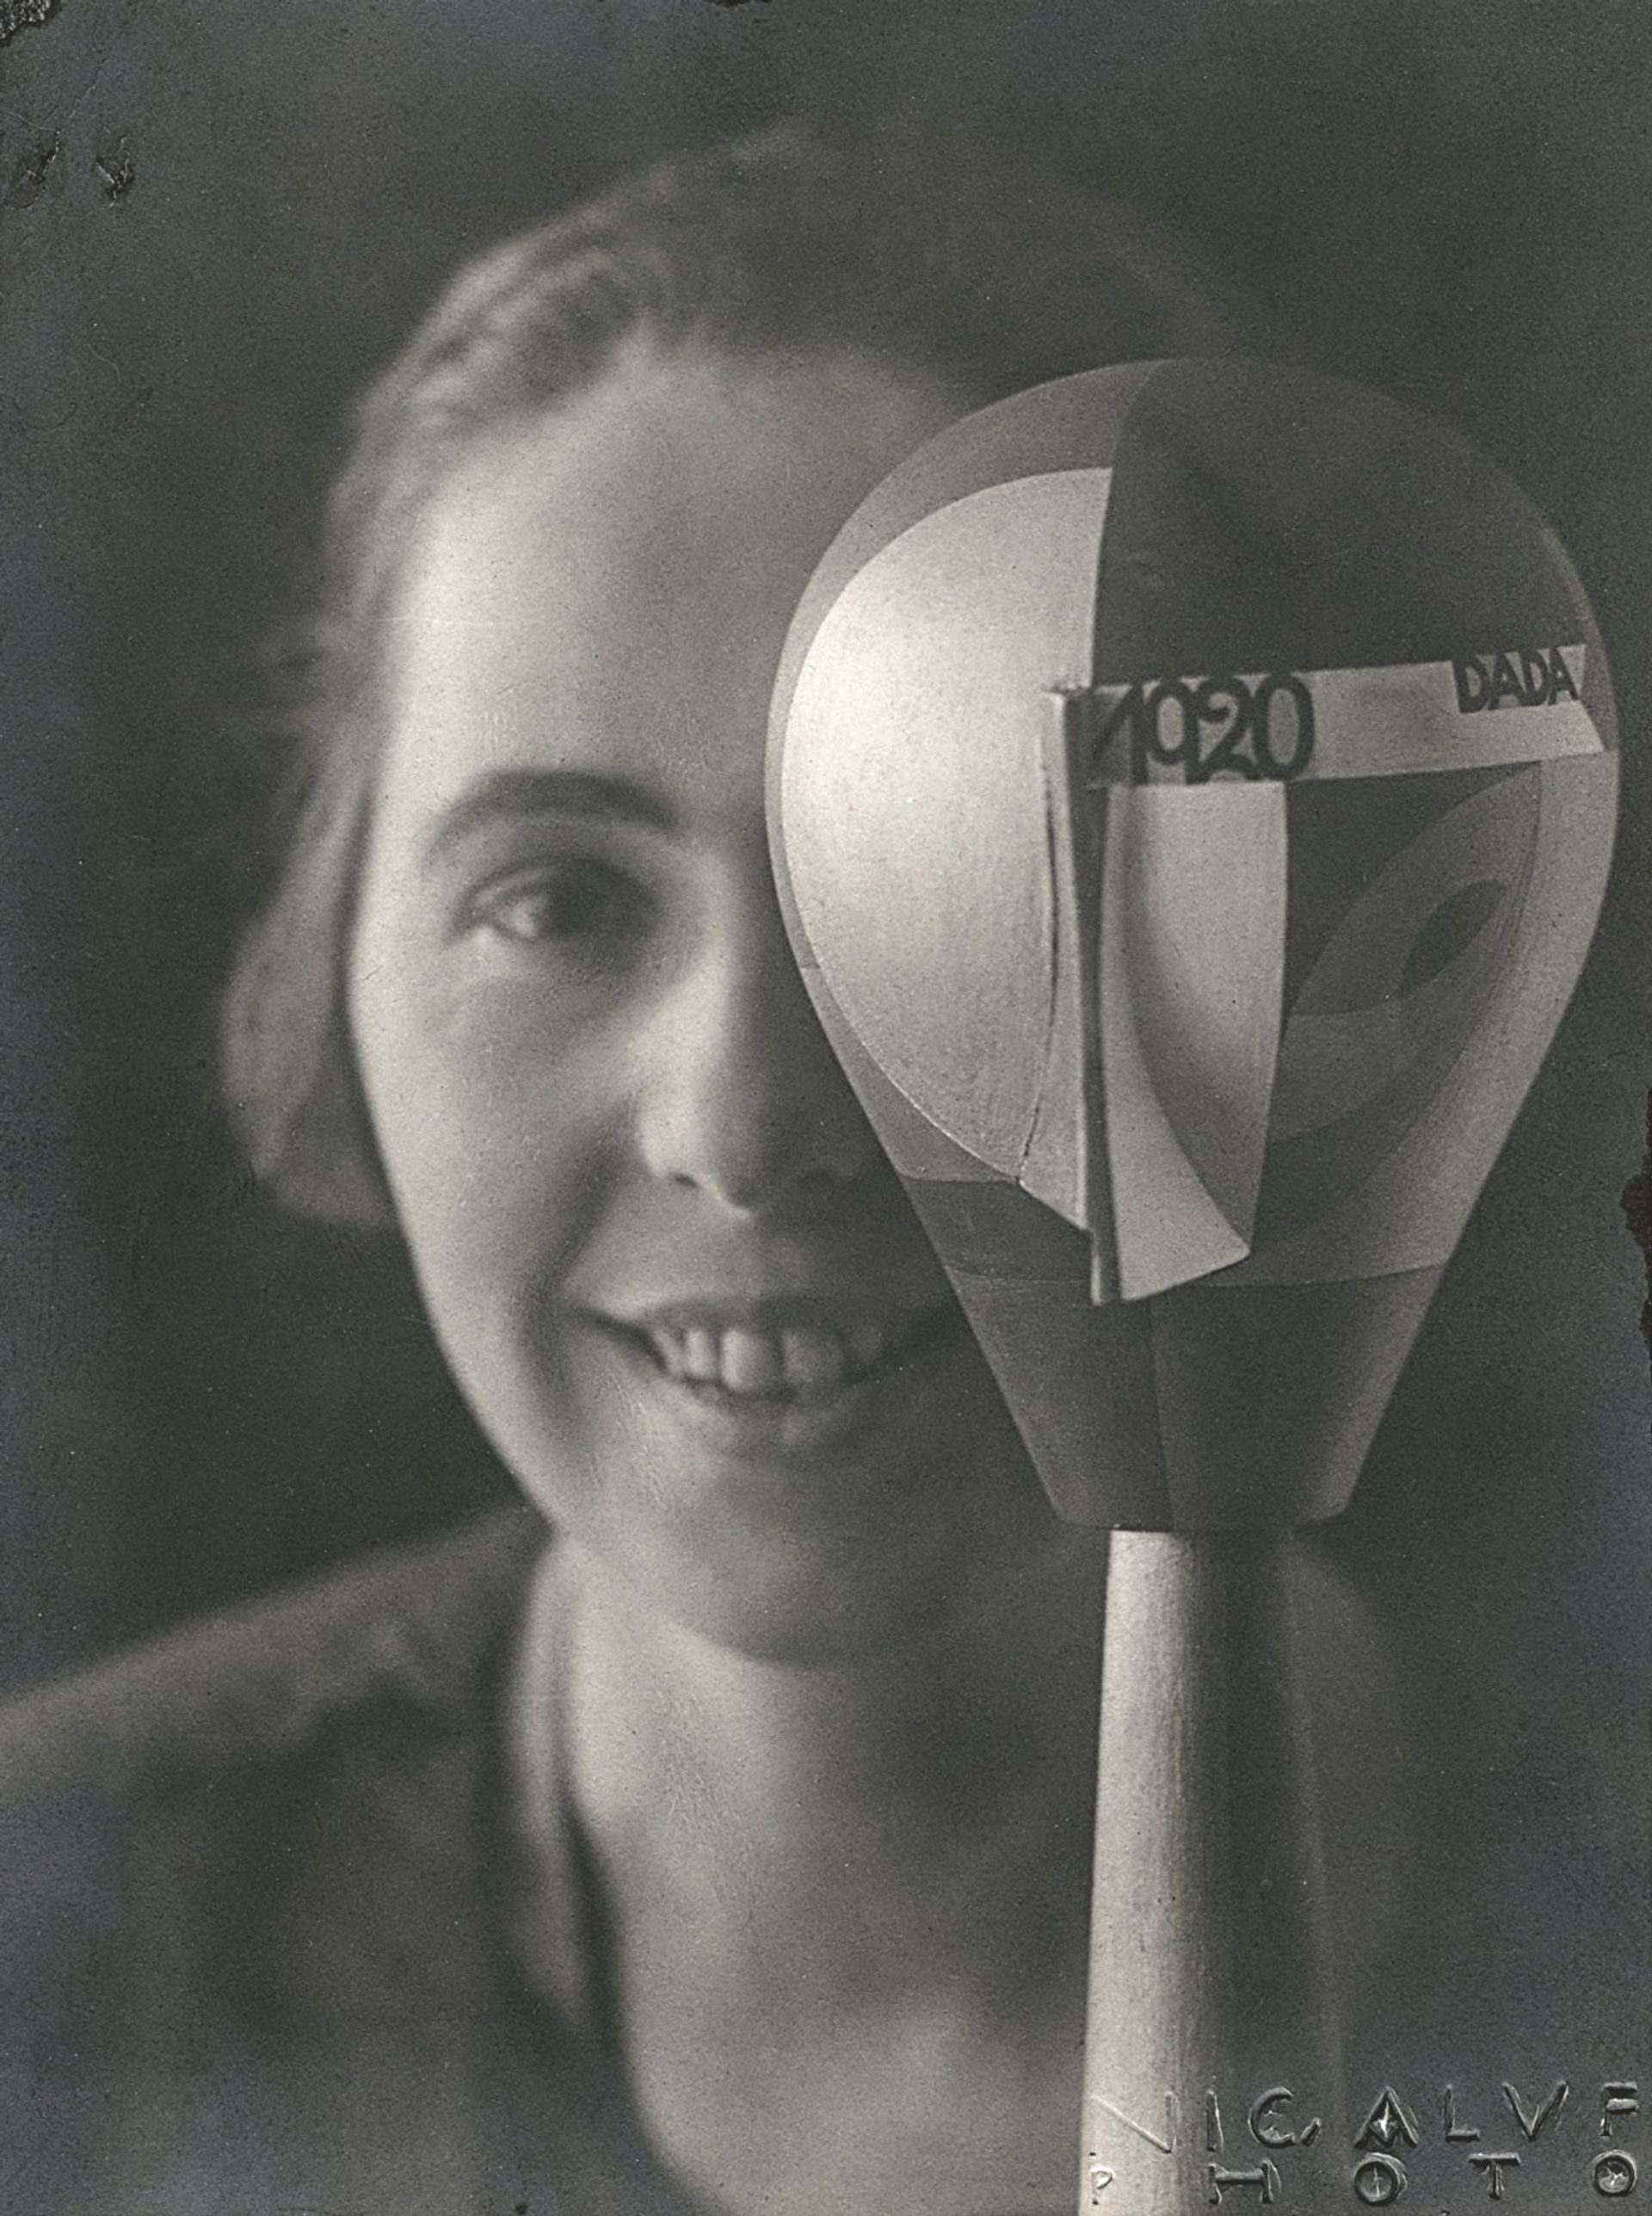 Sophie Taeuber-Arp with her Dada head sculpture, photographed by Nicolai Aluf in 1920 Stiftung Arp e.V., Berlin